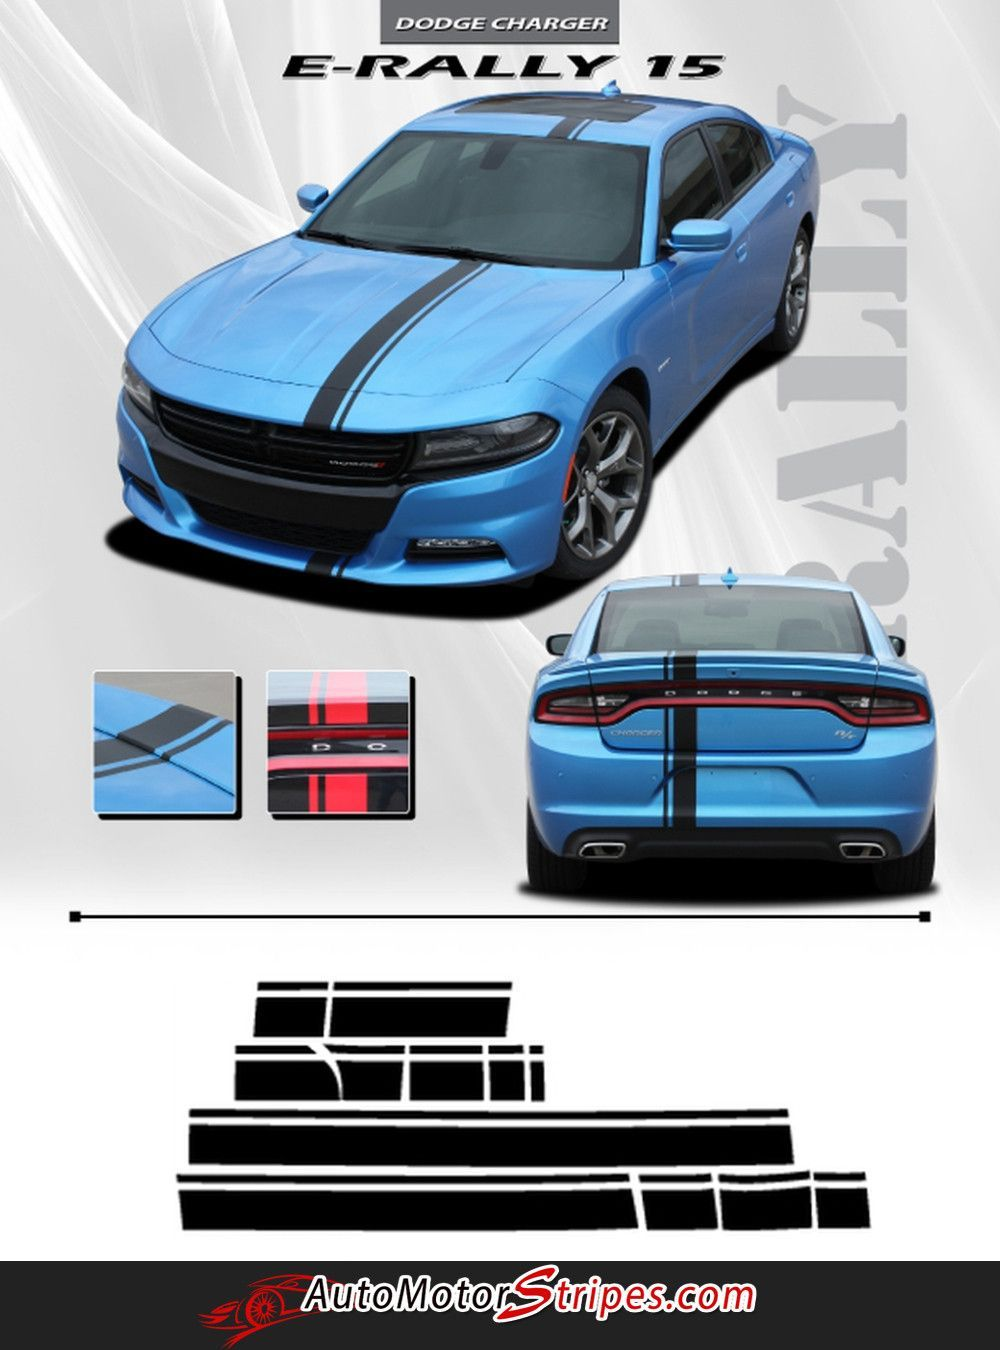 2015 2017 dodge charger e rally euro style vinyl graphics racing stripes kit 3m factory quality racing stripes dodge charger and dodge